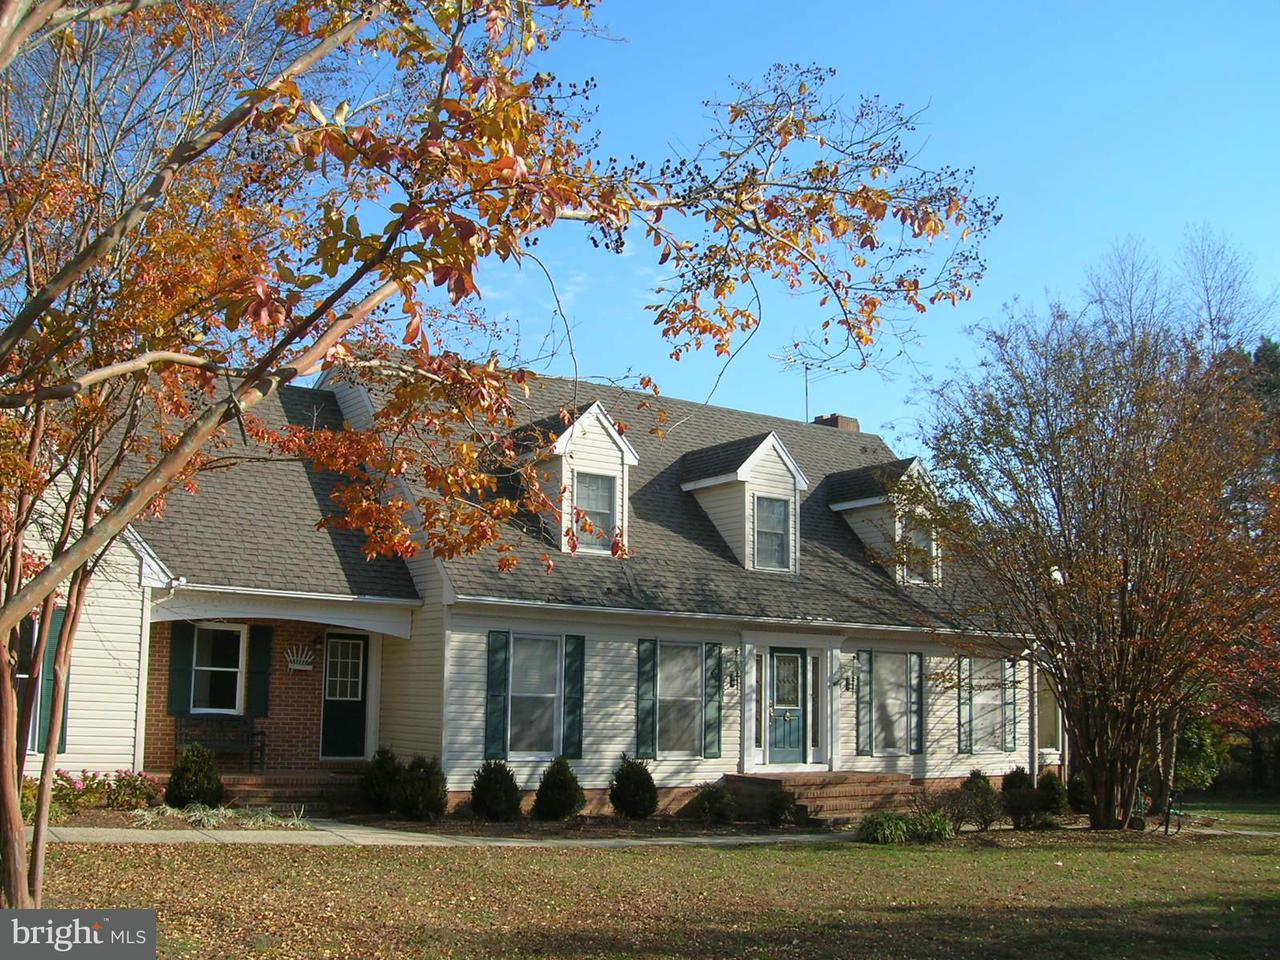 Single Family Home for Sale at 8779 QUAILSAR Road 8779 QUAILSAR Road Easton, Maryland 21601 United States